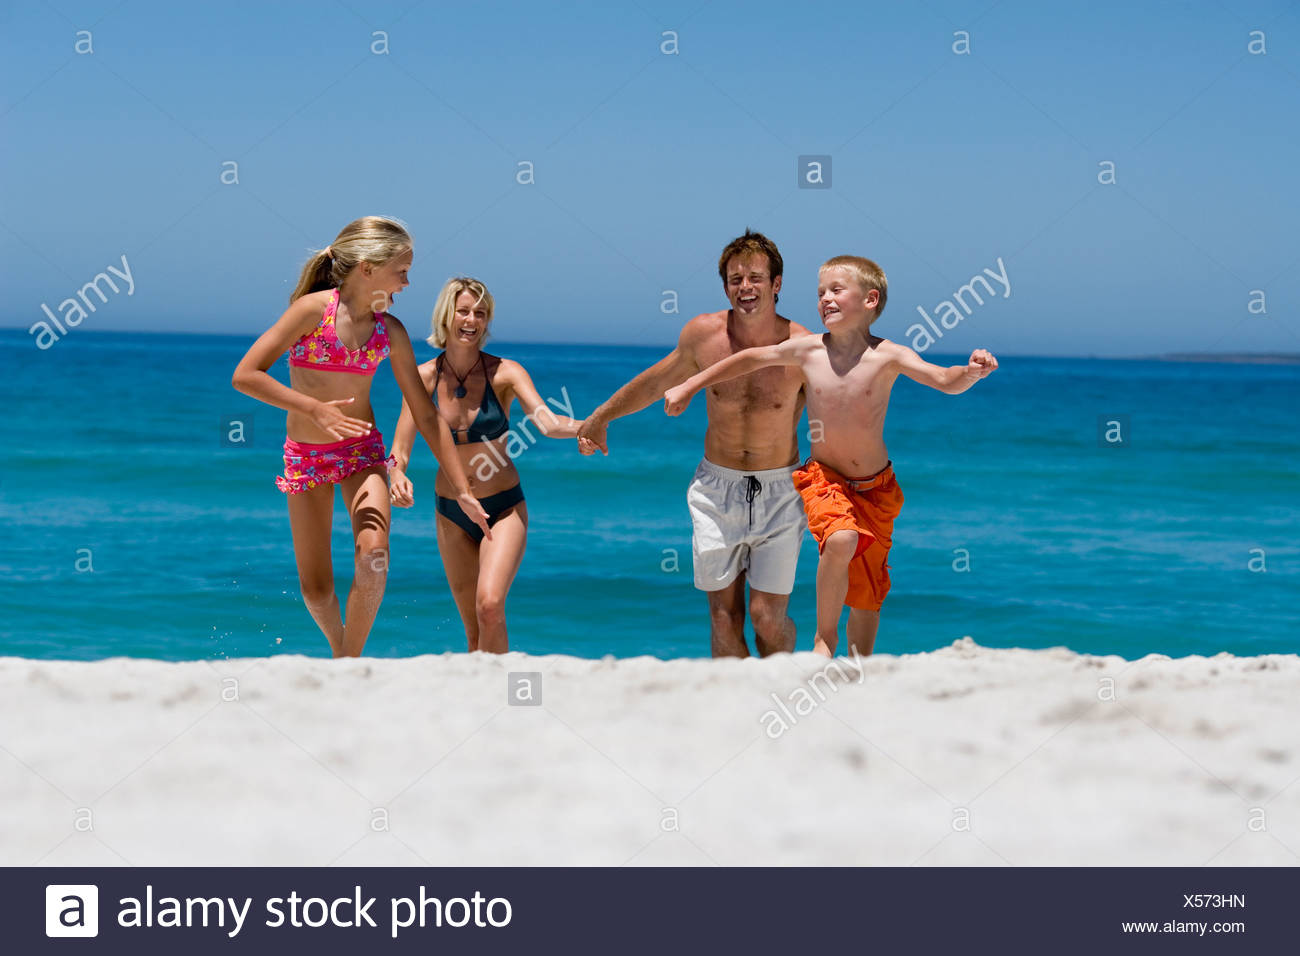 Two generation family in swimwear running from water on beach smiling front view - Stock Image